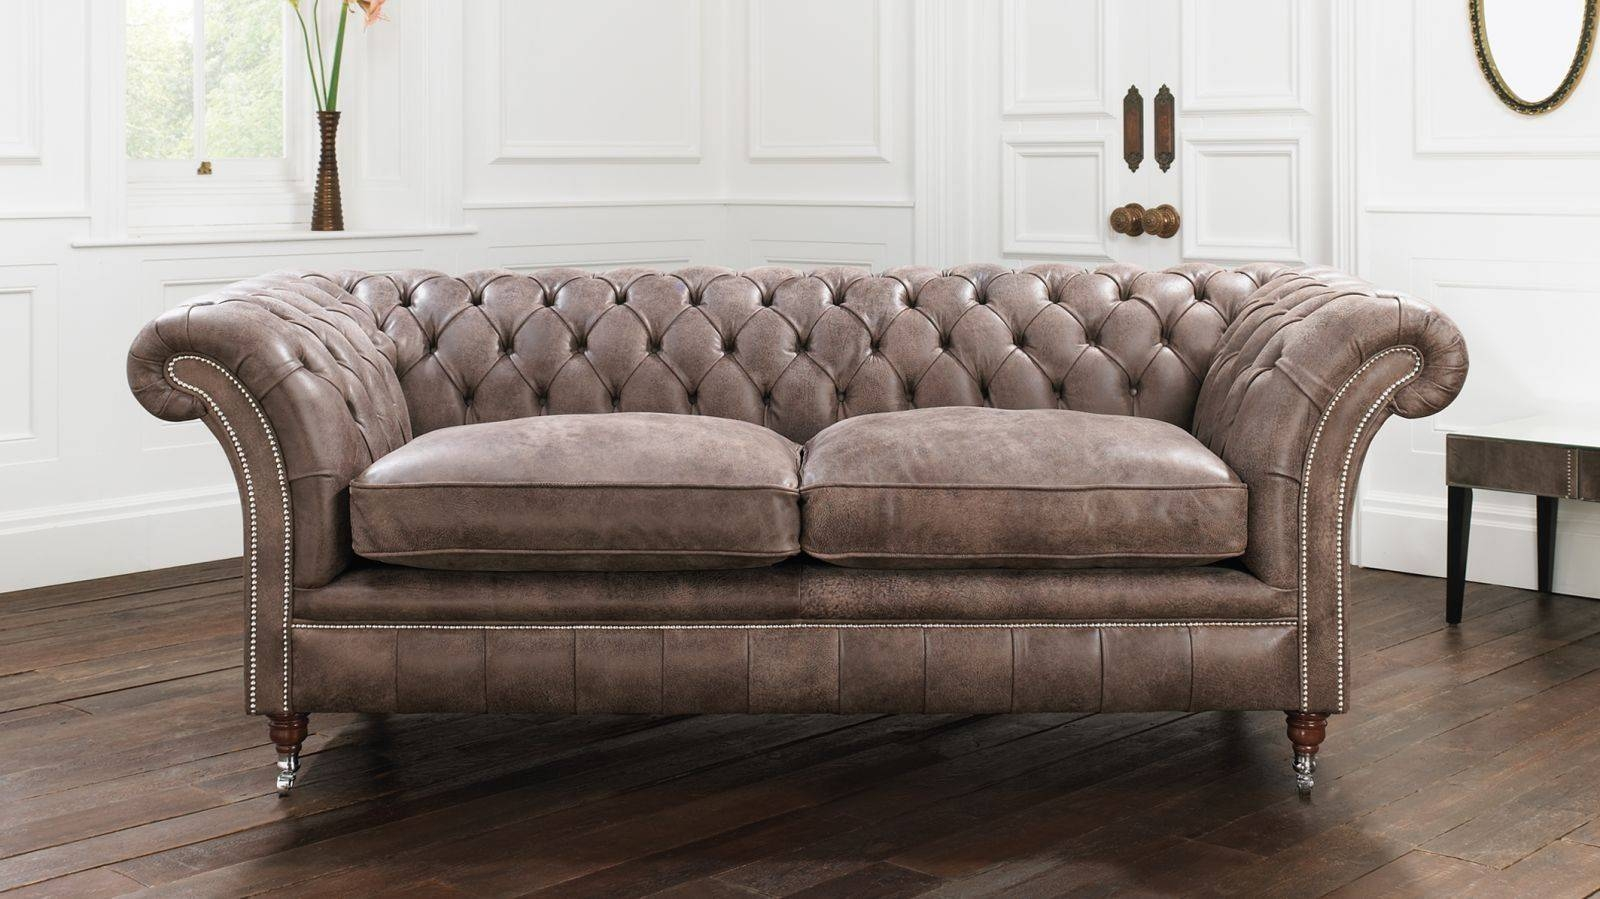 Furniture: Have A Luxury Living Room With The Elegant Chesterfield inside Tufted Leather Chesterfield Sofas (Image 11 of 30)